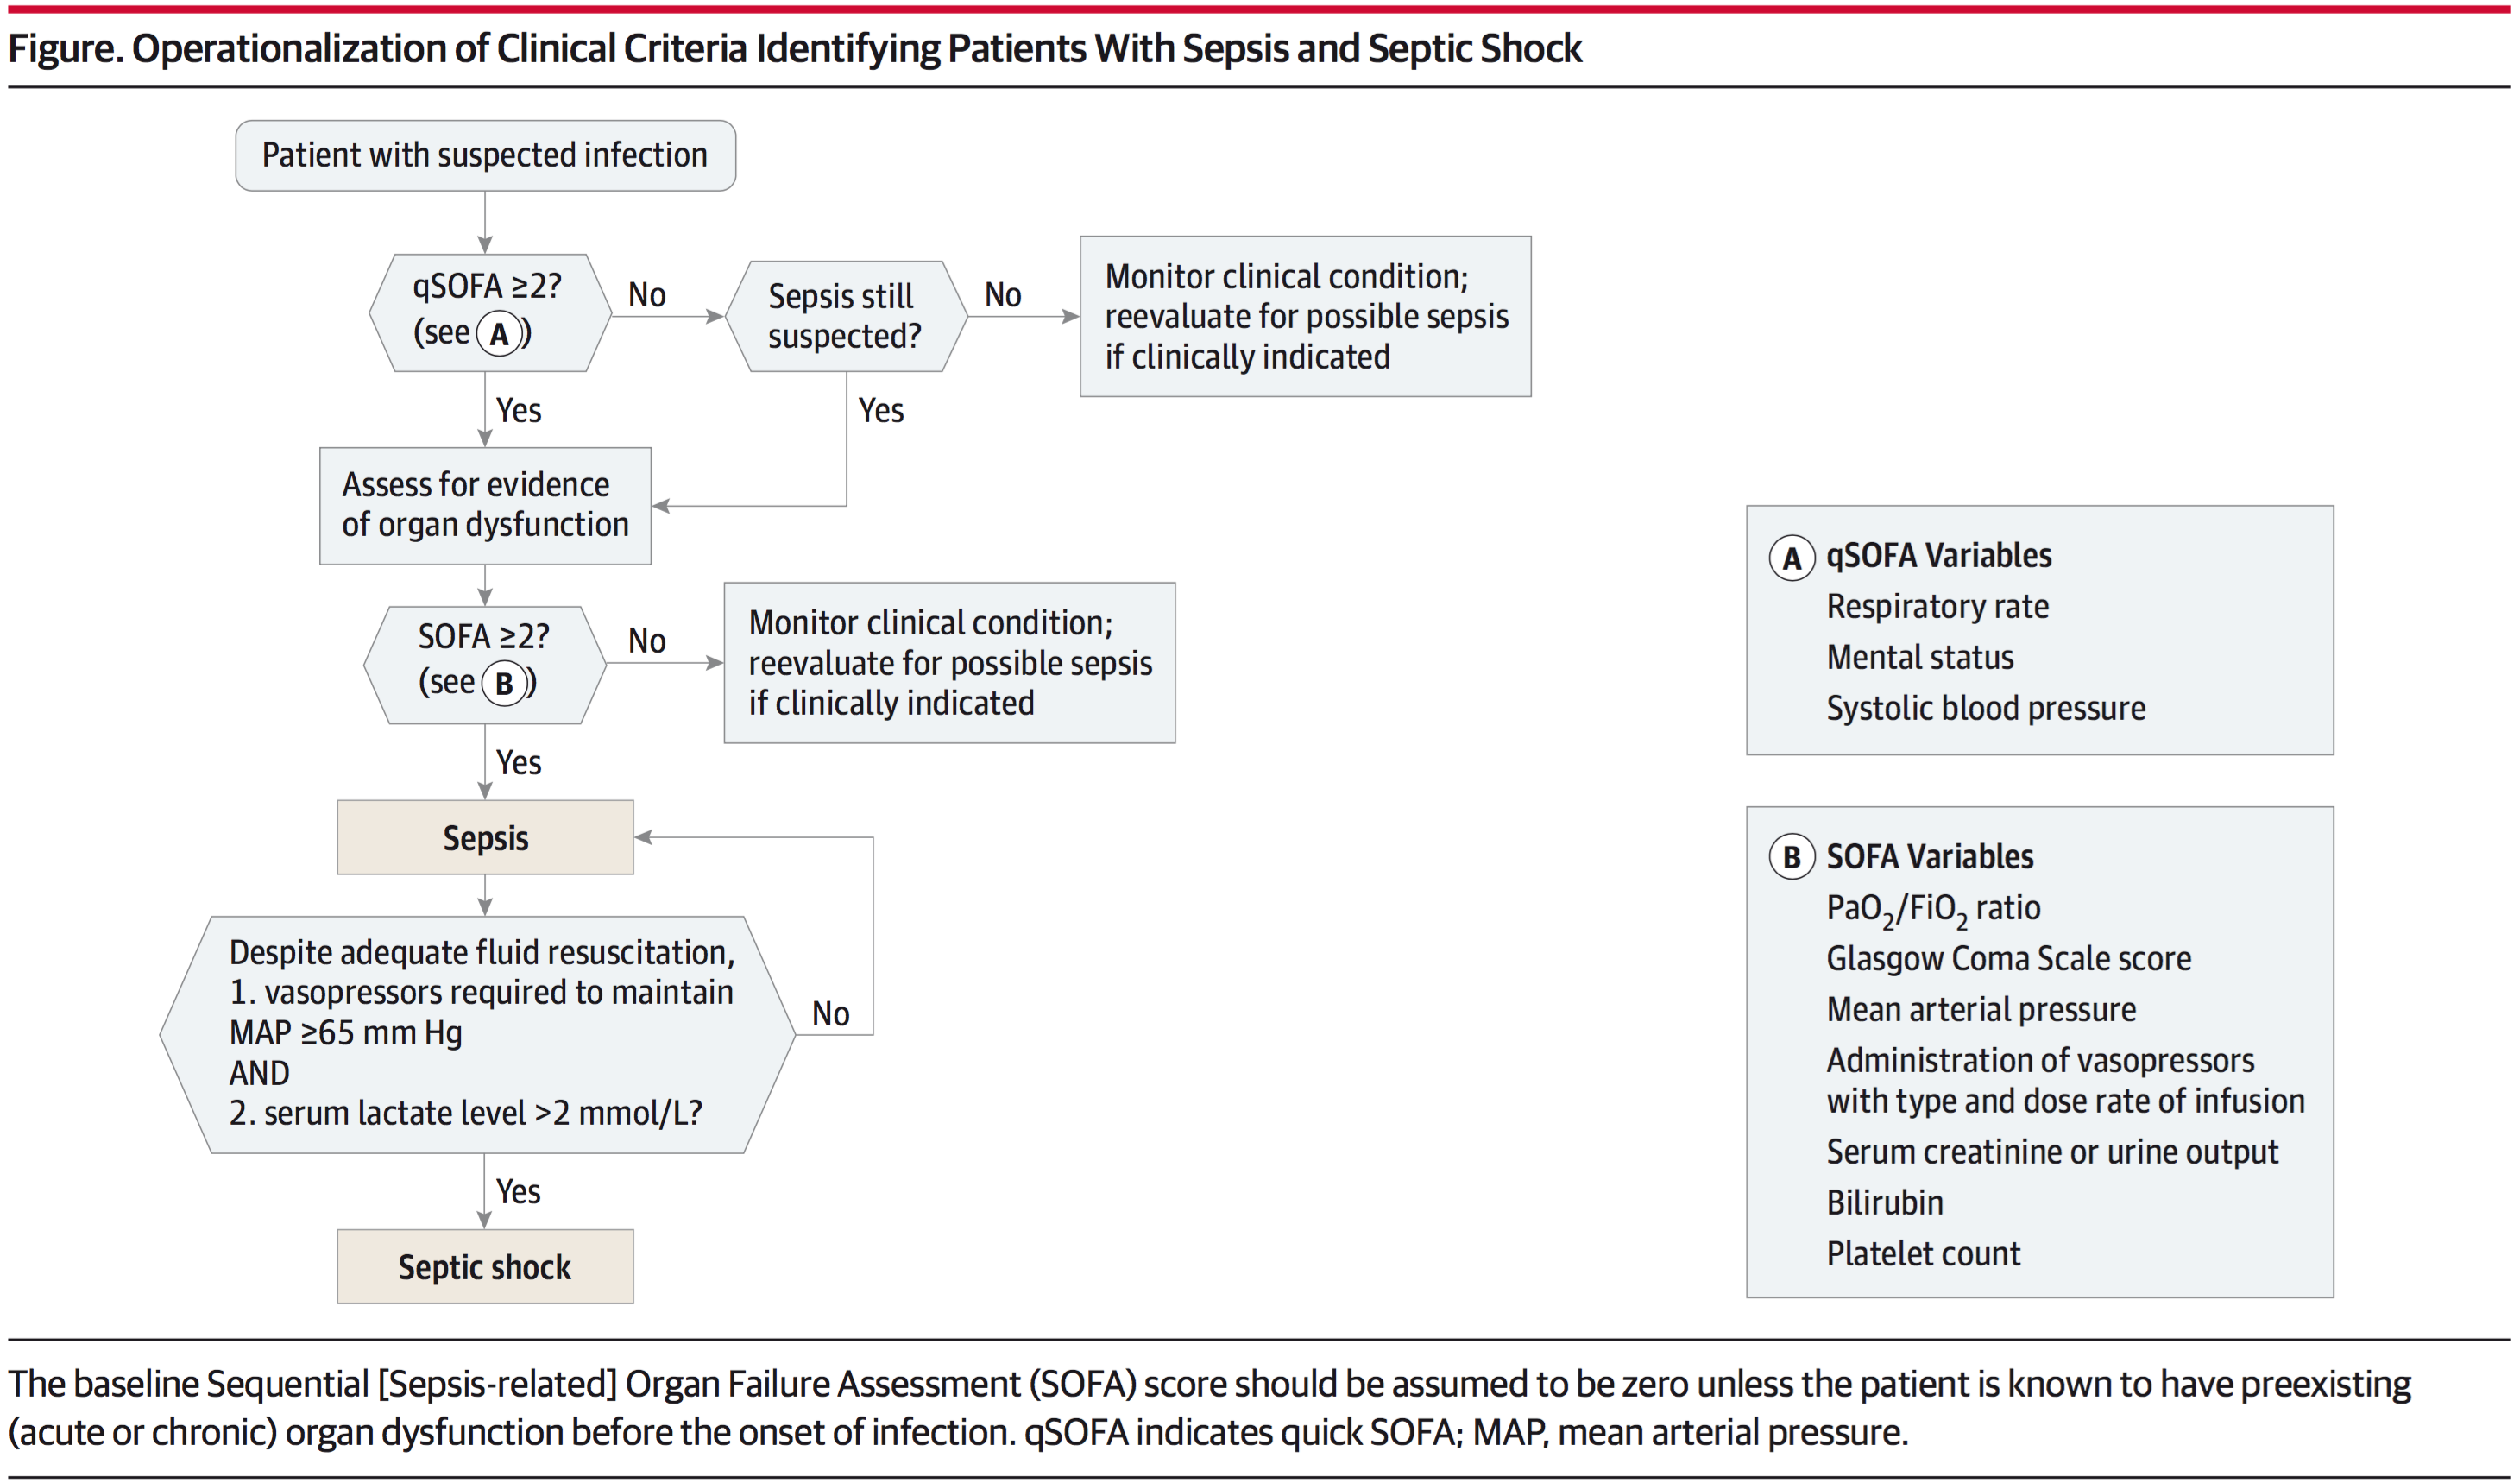 Figure. Operationalization of Clinical Criteria Identifying Patients With Sepsis and Septic Shock